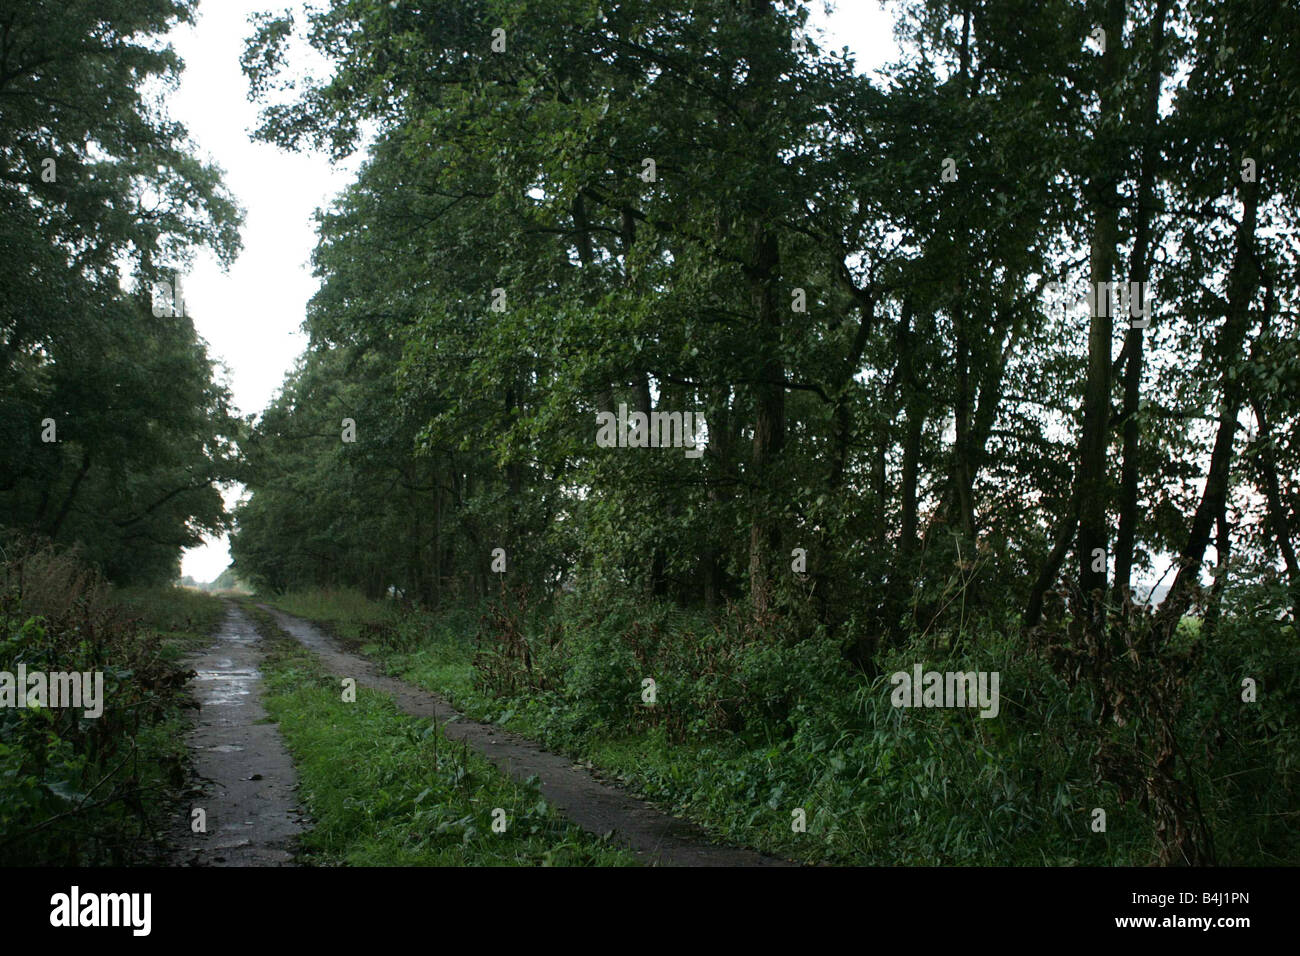 The woods in Suffolk where the Holly and Jessica s bodies were found off a dirt track - Stock Image